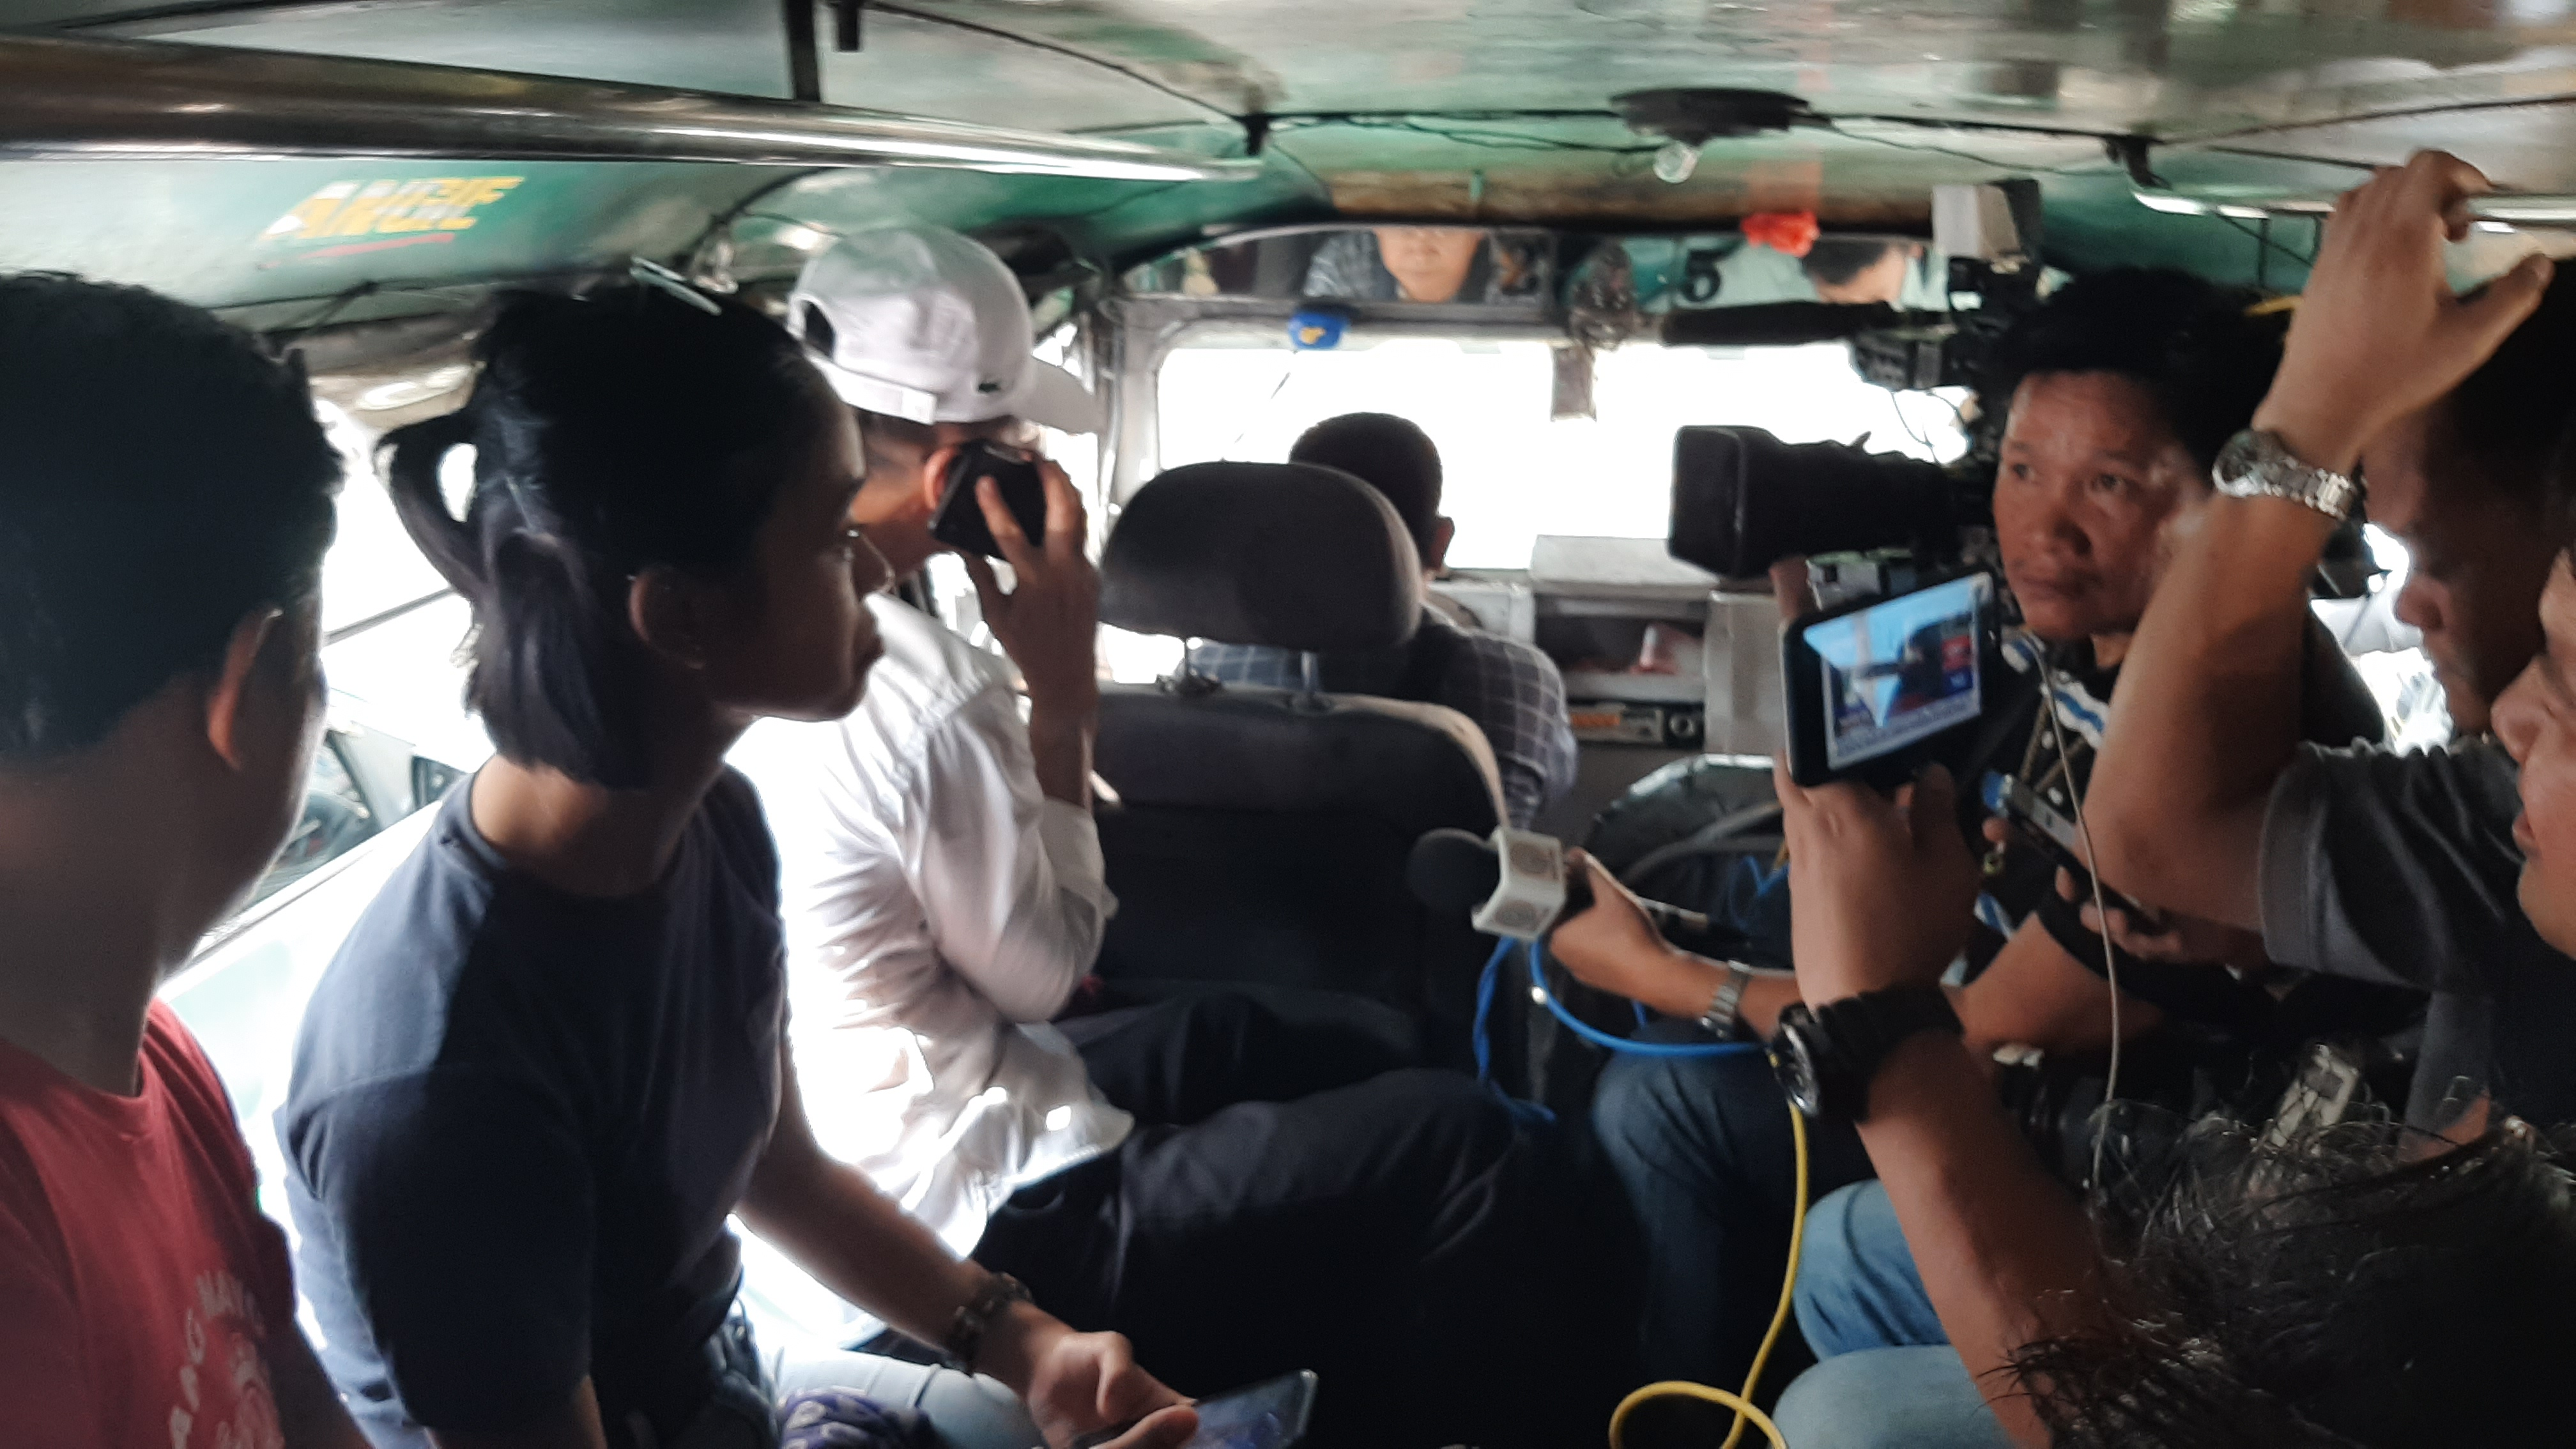 MEDIA CAUSED TRAFFIC? Members of the media swarm Presidential Spokesperson Salvador Panelo inside a jeepney, much to the frustration of the other passengers who are hurrying to work and school. Photo courtesy of Adrian Portugal